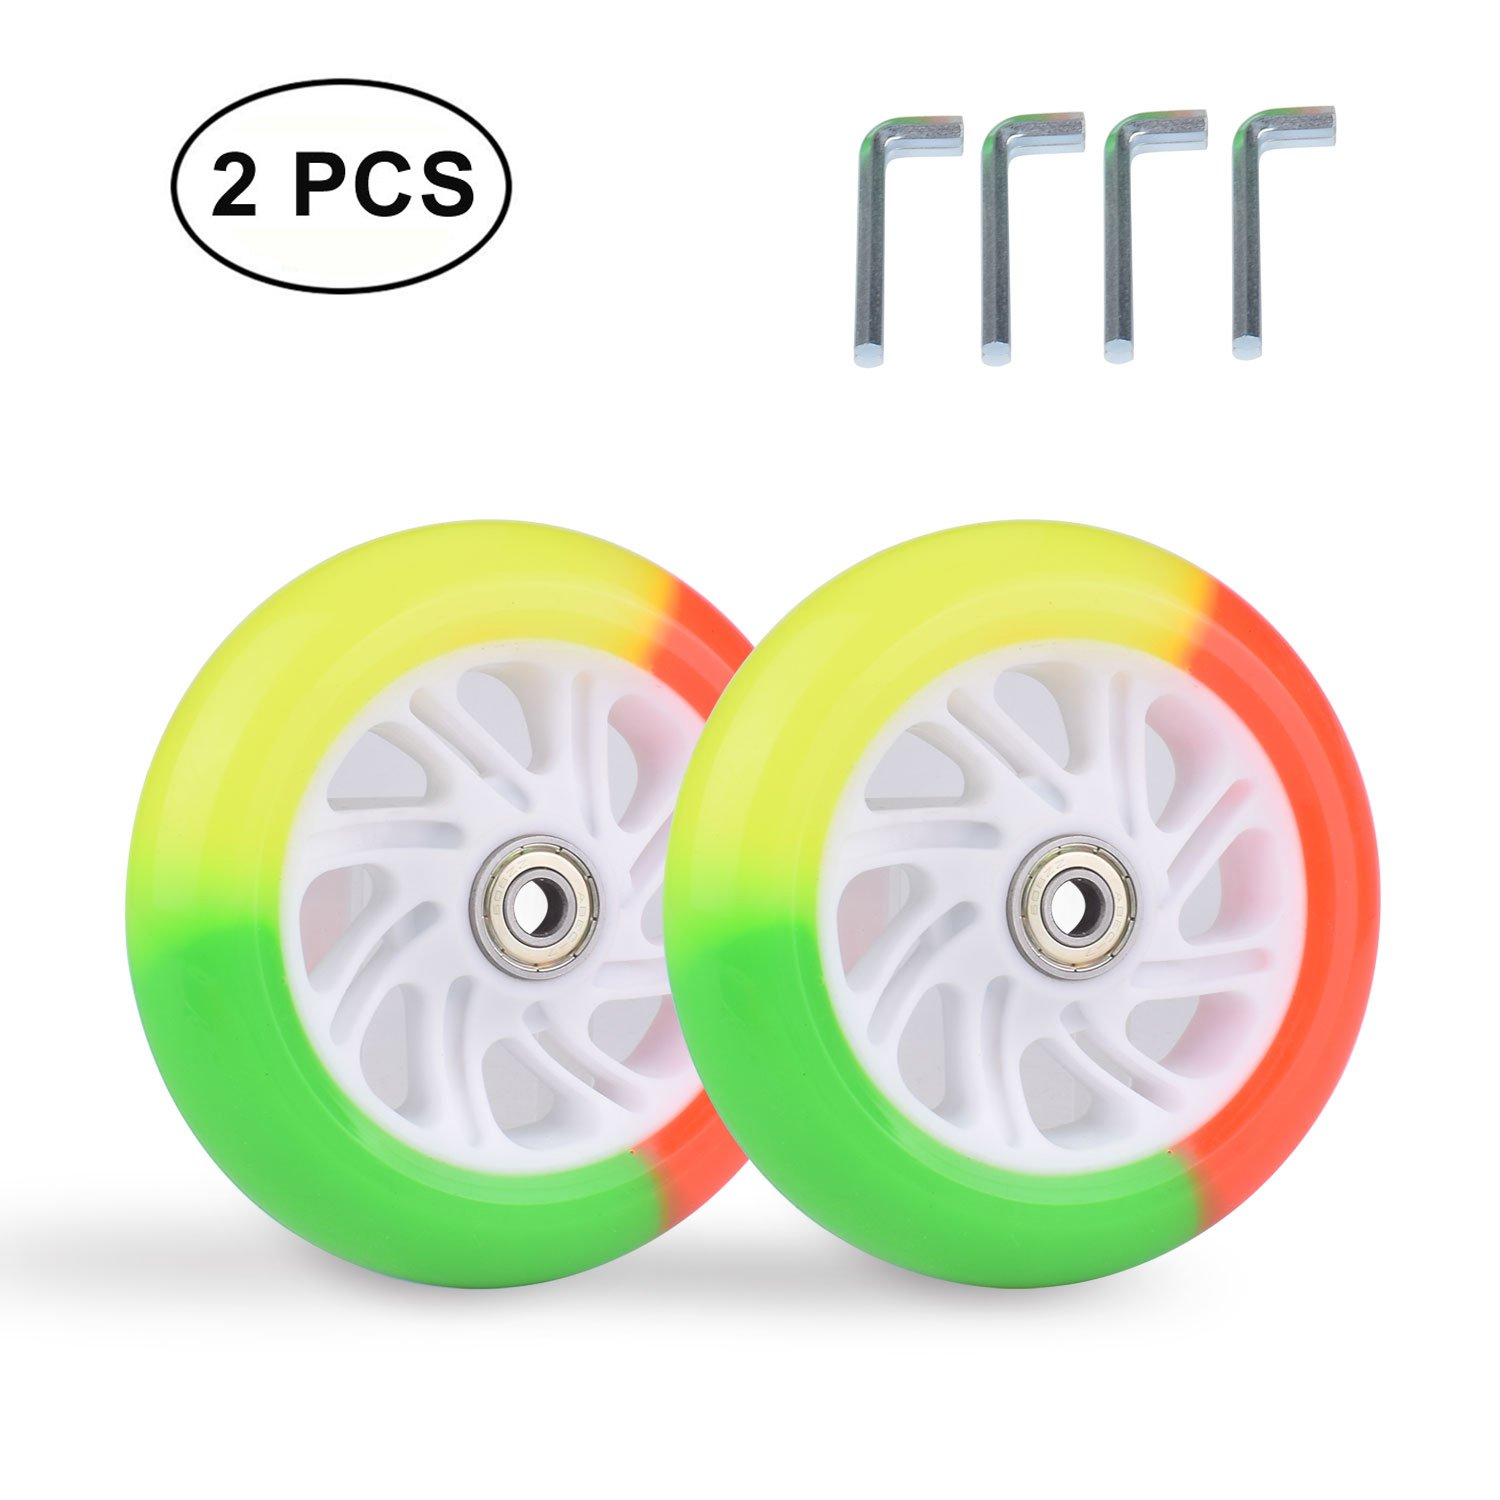 B.LeekS RollerbladeSkate Wheel Replacements, Kick Scooter Replacement Wheels with Bearings, One Set of (2) Wheels, Multiple Sizes & Colors with LED Illuminating Lights (Multicolor, 100mm)